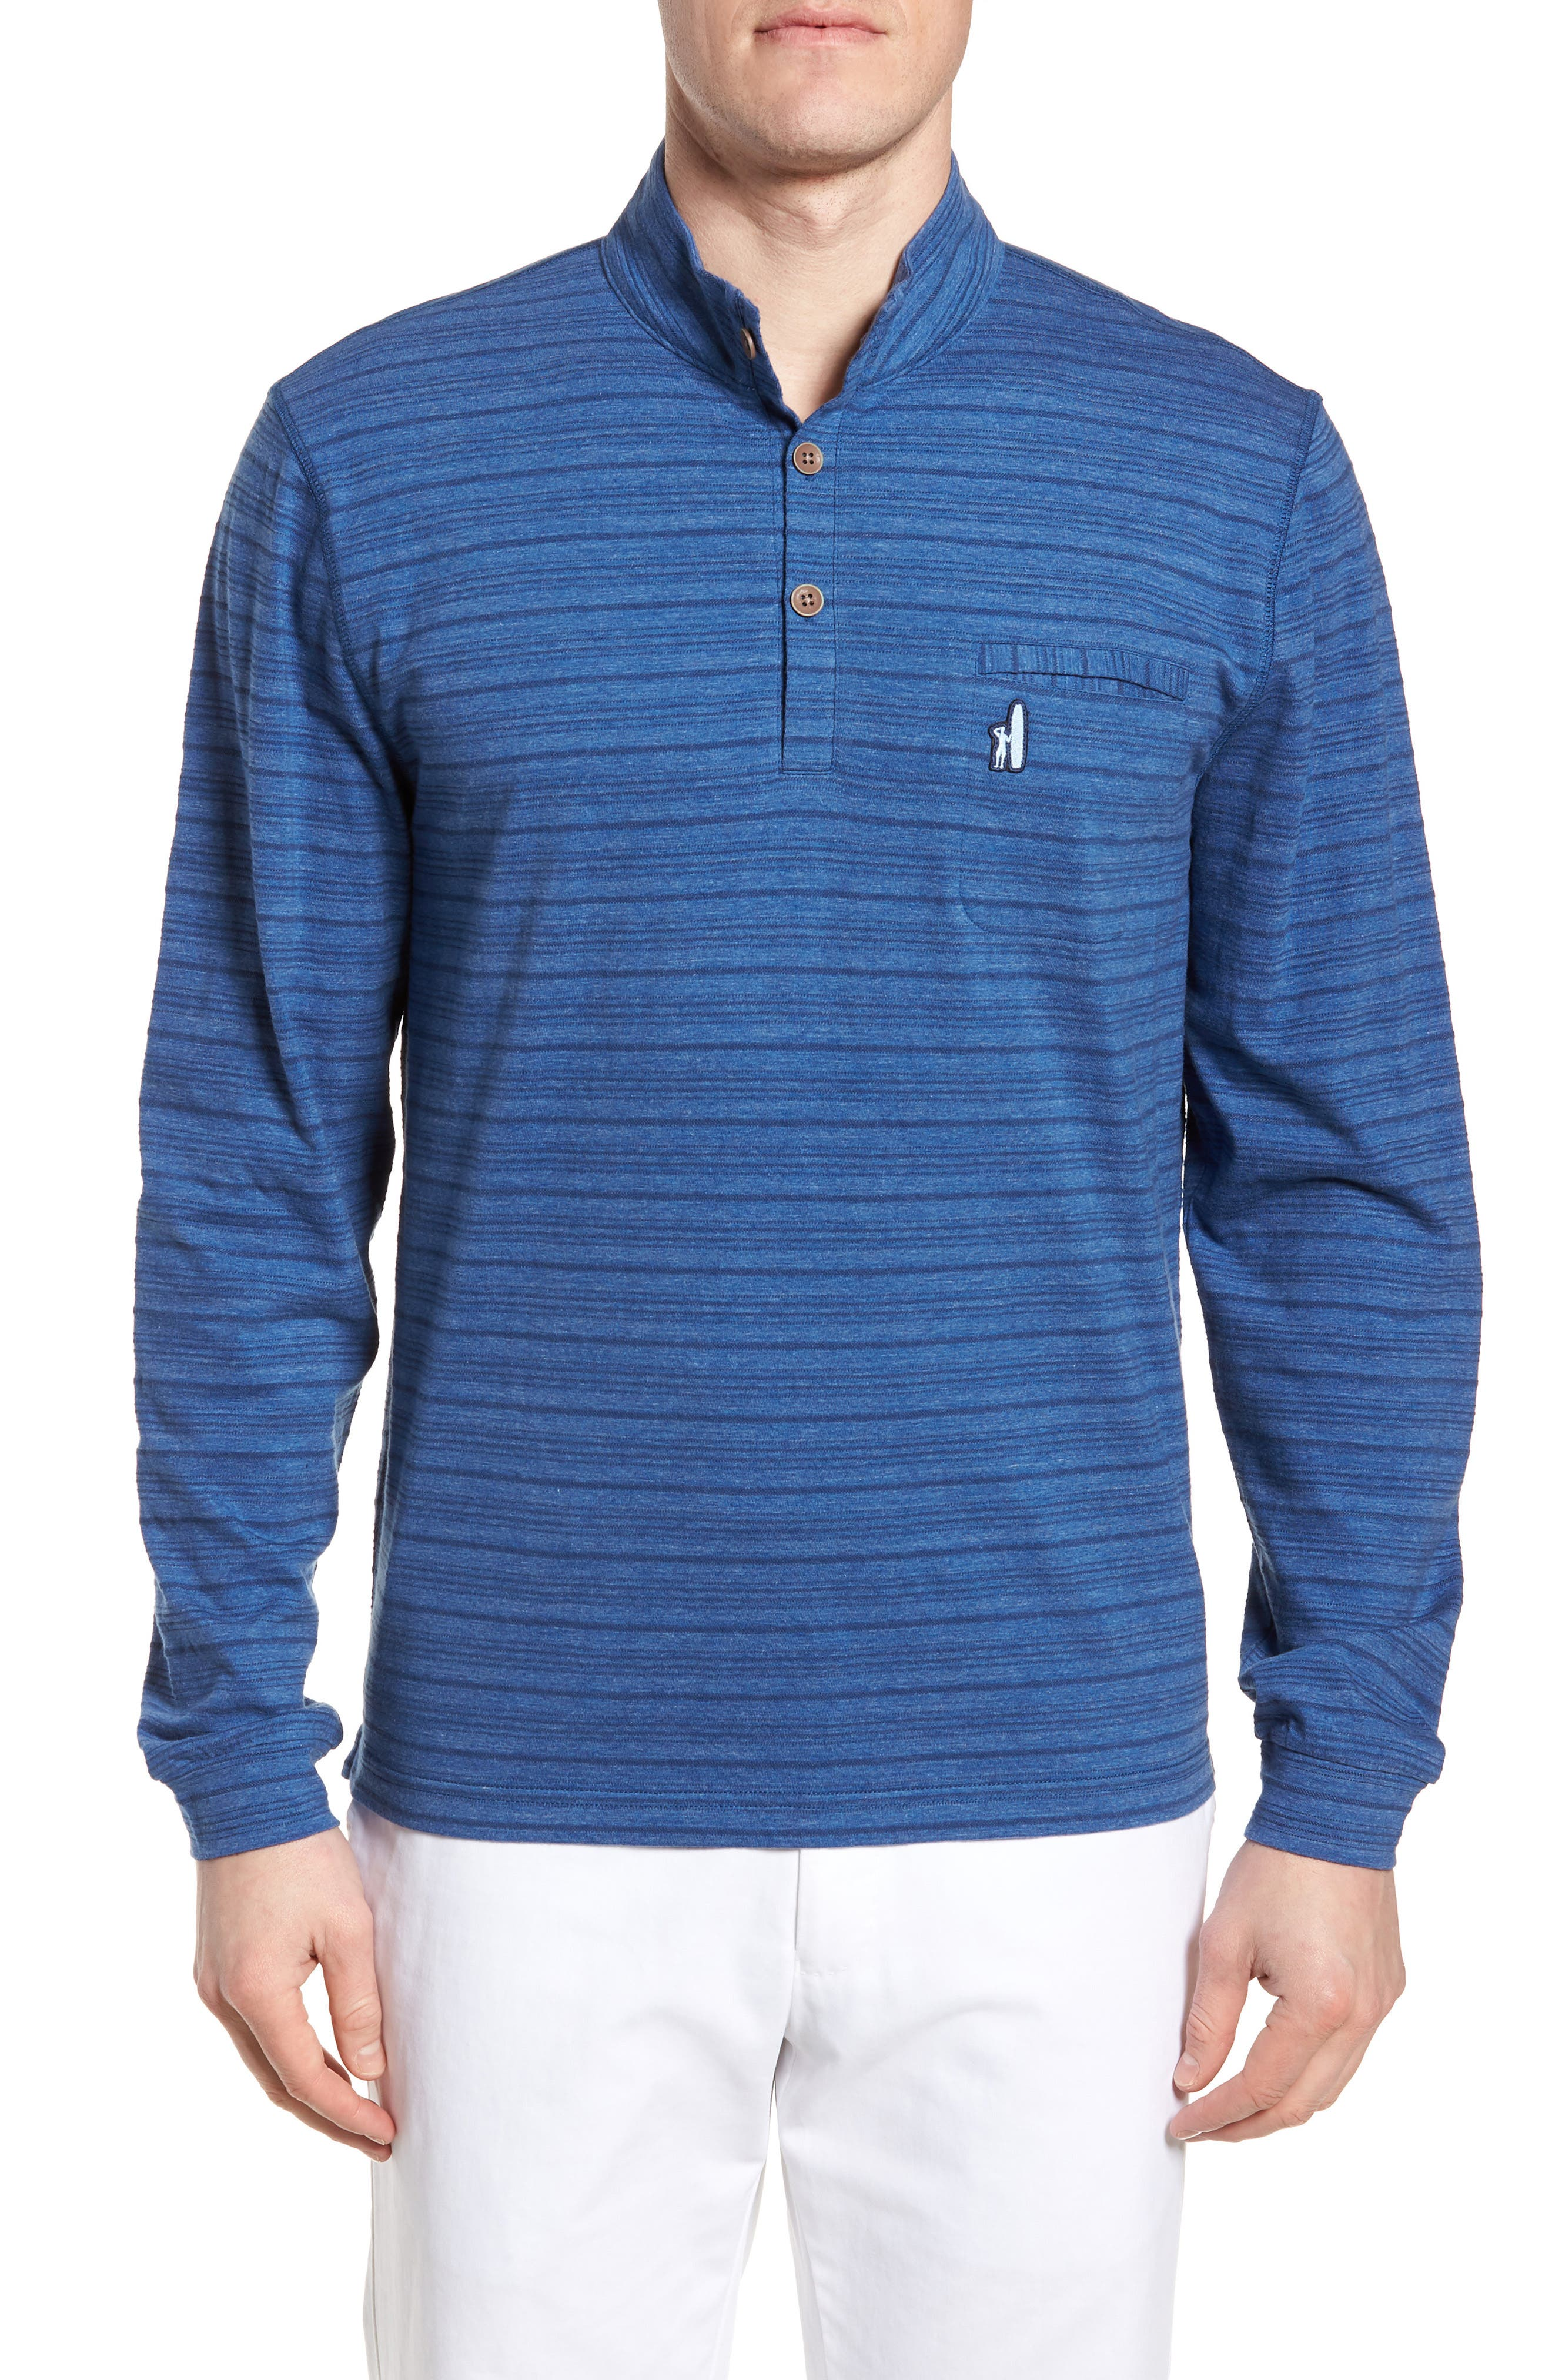 Calder Regular Fit T-Shirt,                         Main,                         color, Regatta